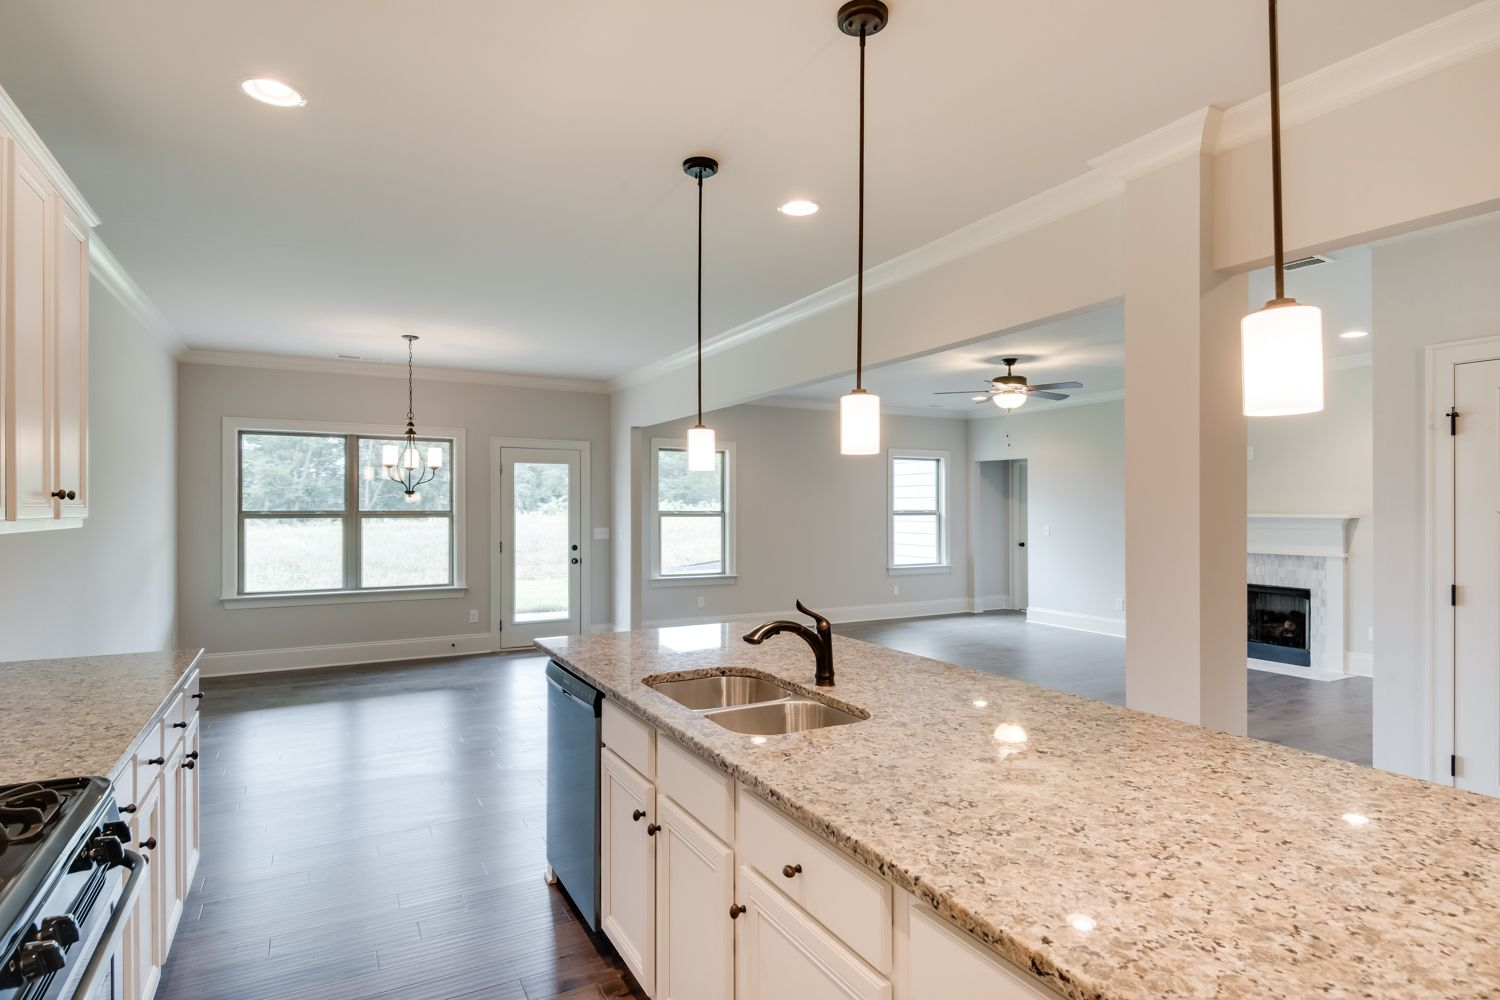 Best This Kitchen Is Painted Agreeable Gray By Sherwin Williams 400 x 300